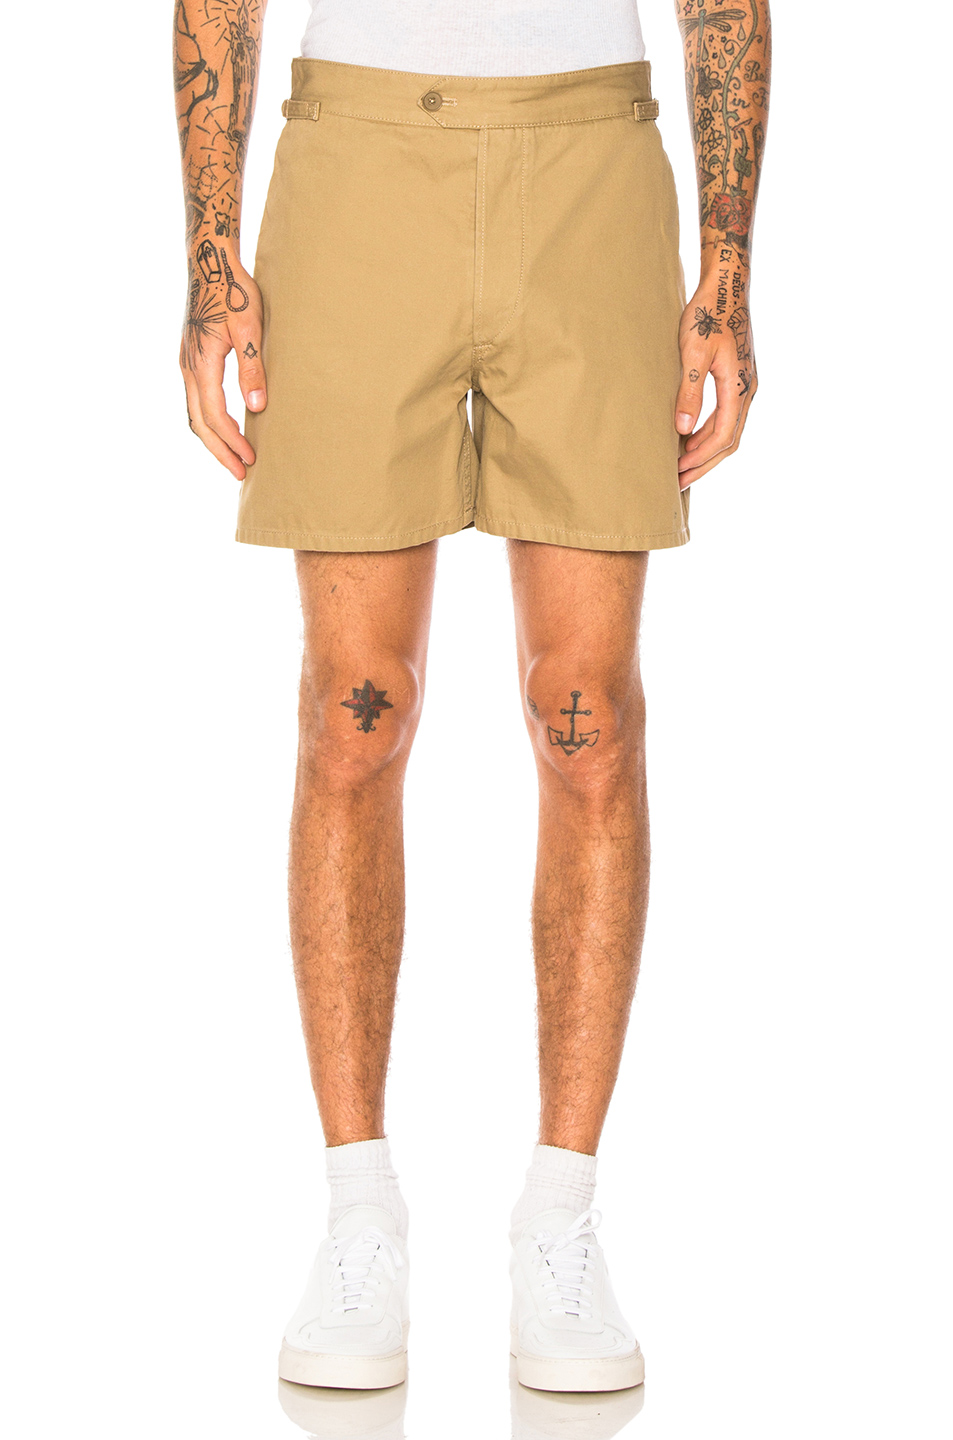 Maison Margiela Cotton Gabardine Shorts in Neutrals